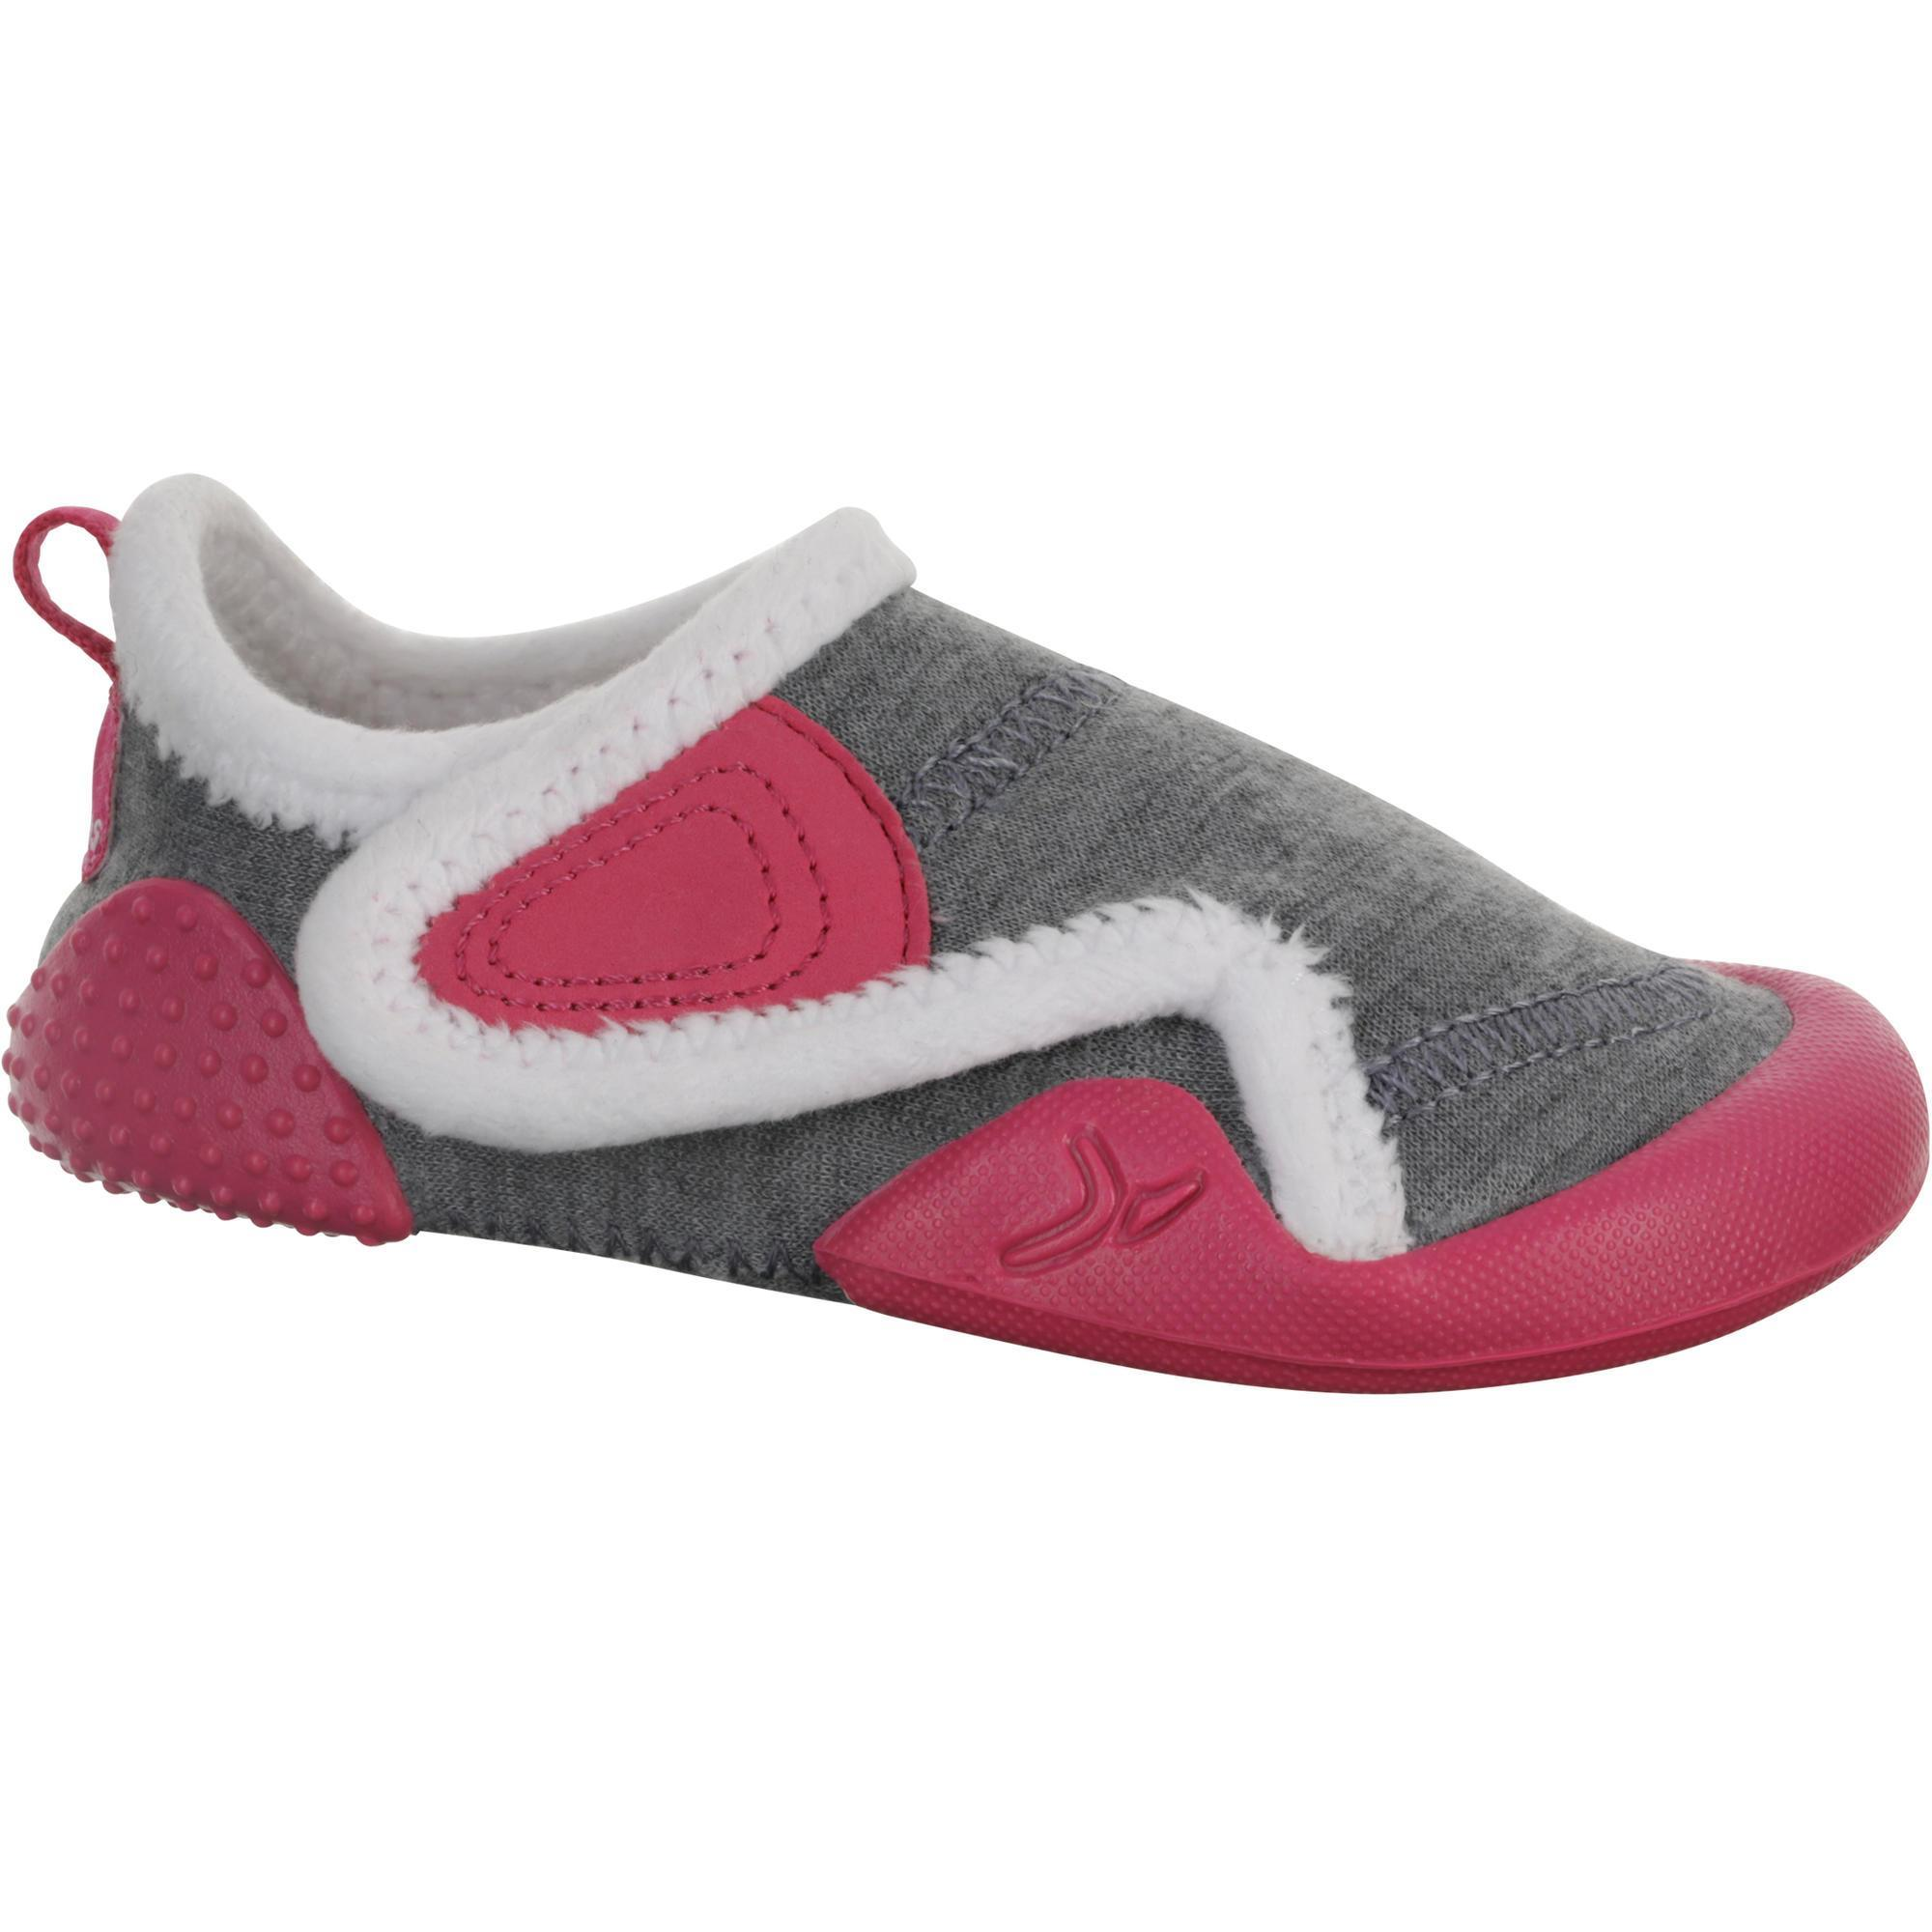 light pink gym shoes